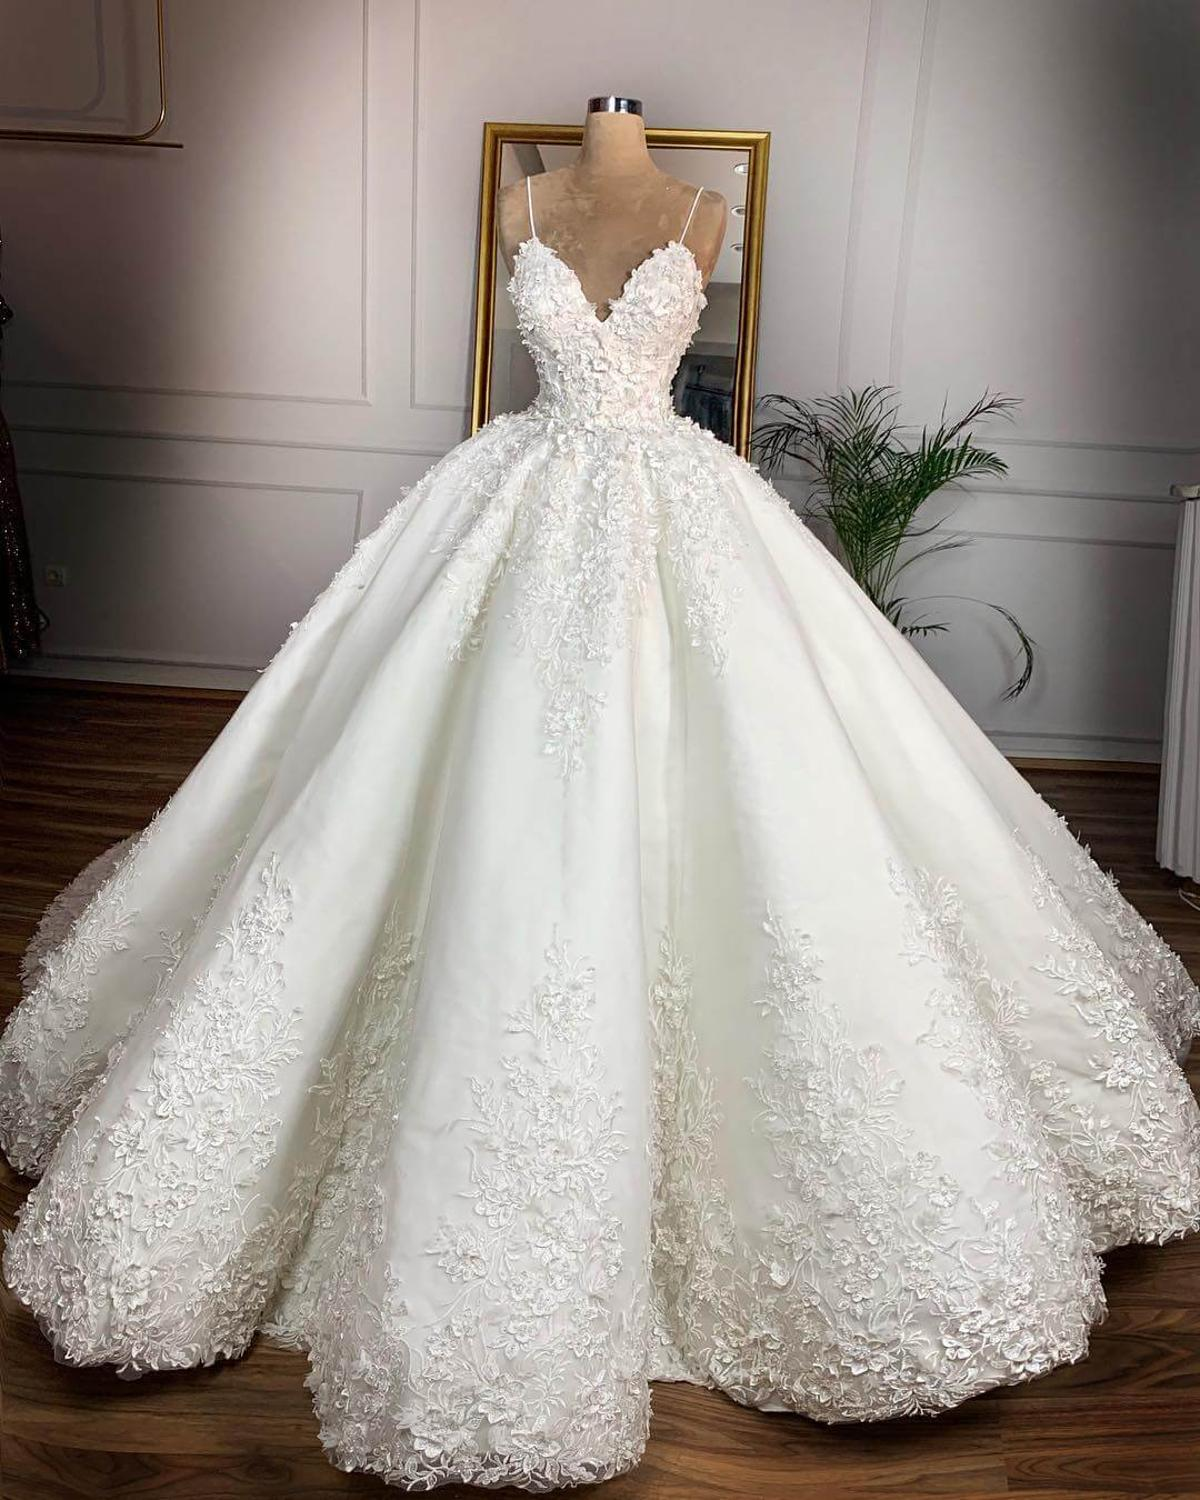 Vintage Lace Floral Ball Gown Wedding Dresses Casamento Romantic V-neck Lace Up Plus Size Wedding Bride Dress Gelinlik